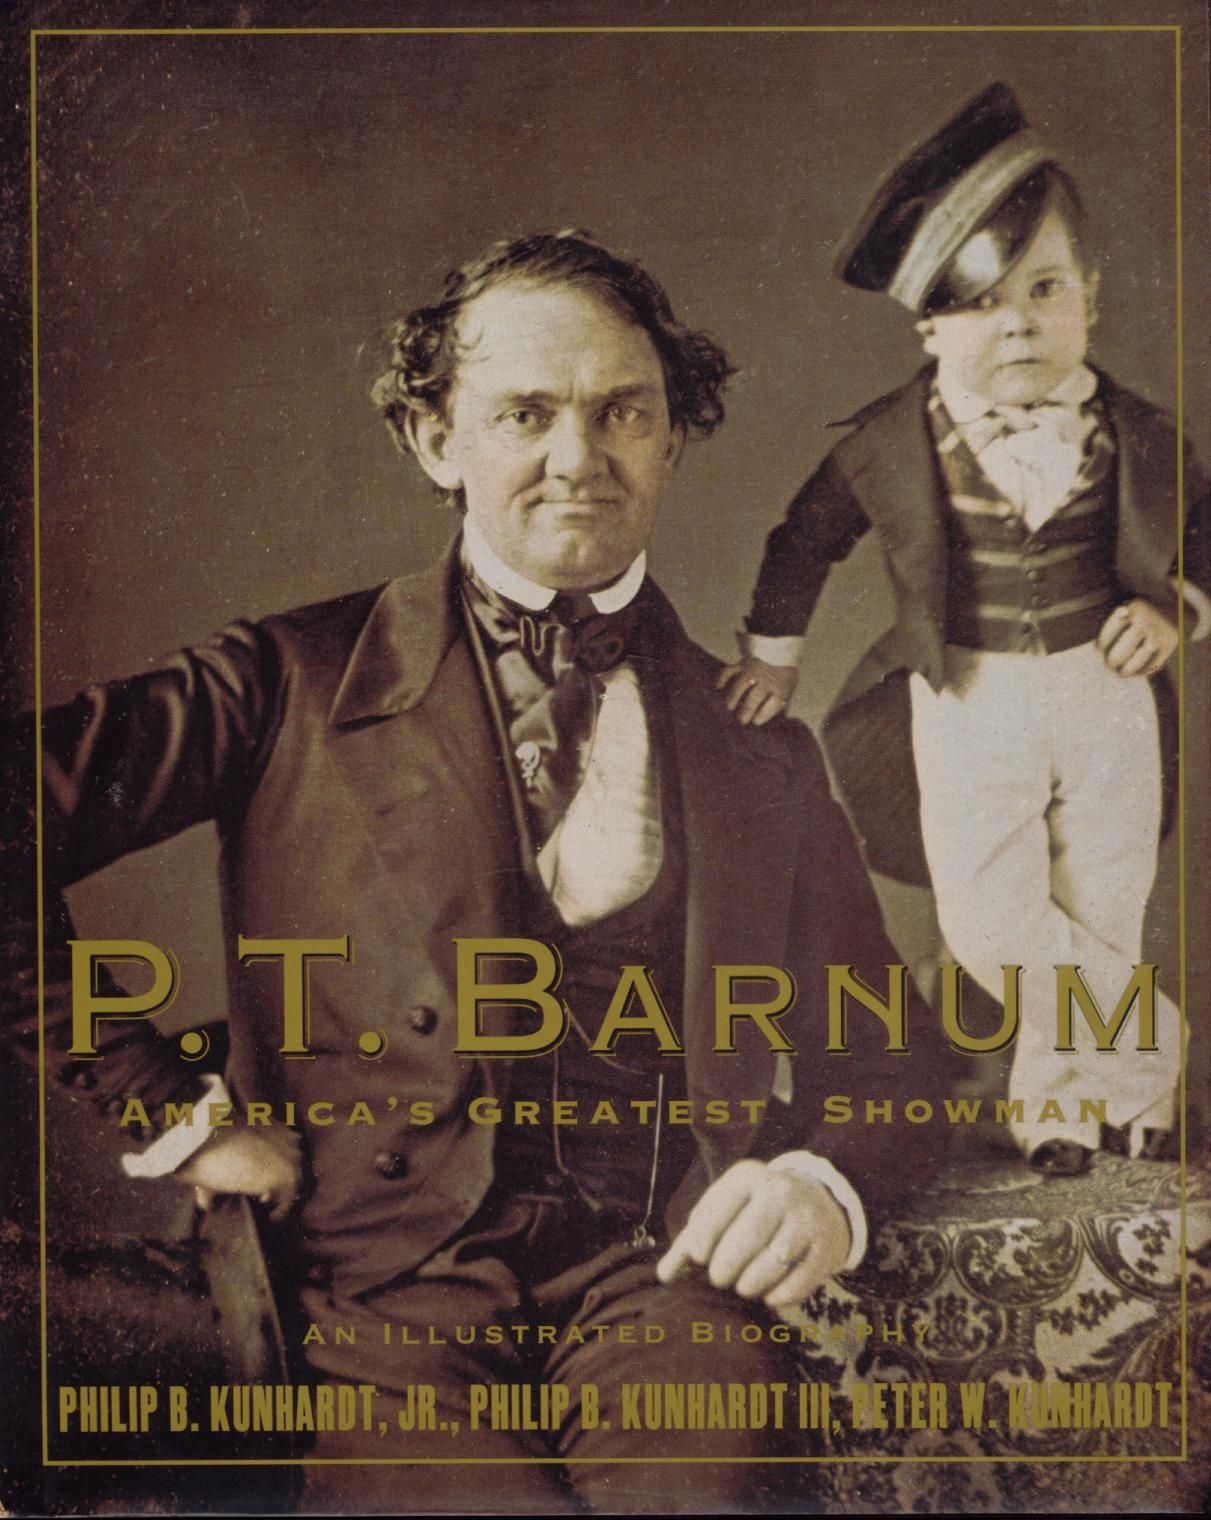 PT BARNUM the genius creator and promoter of the Barnum